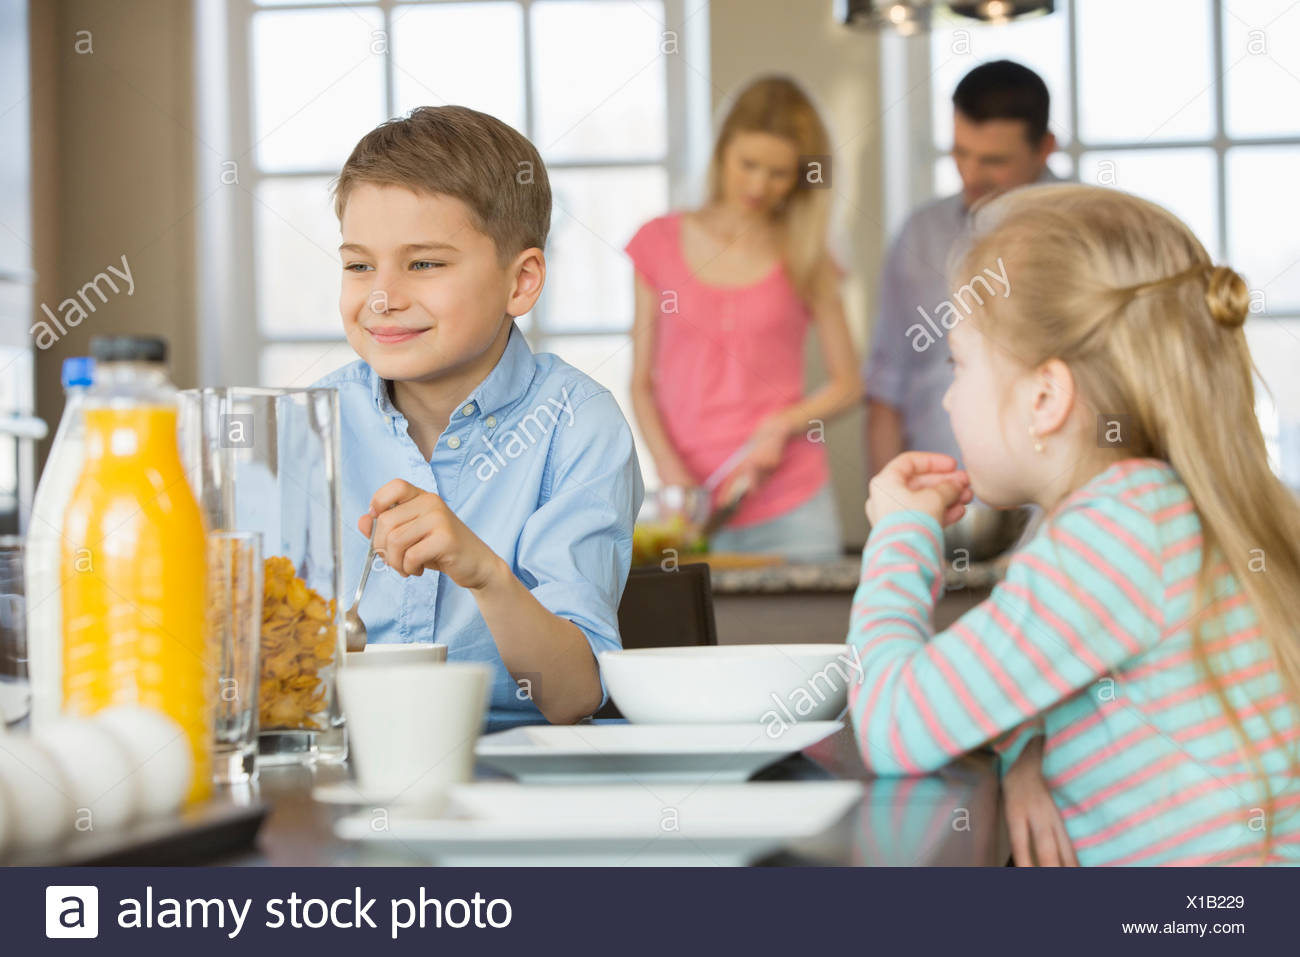 Siblings having breakfast at table with parents cooking in background - Stock Image